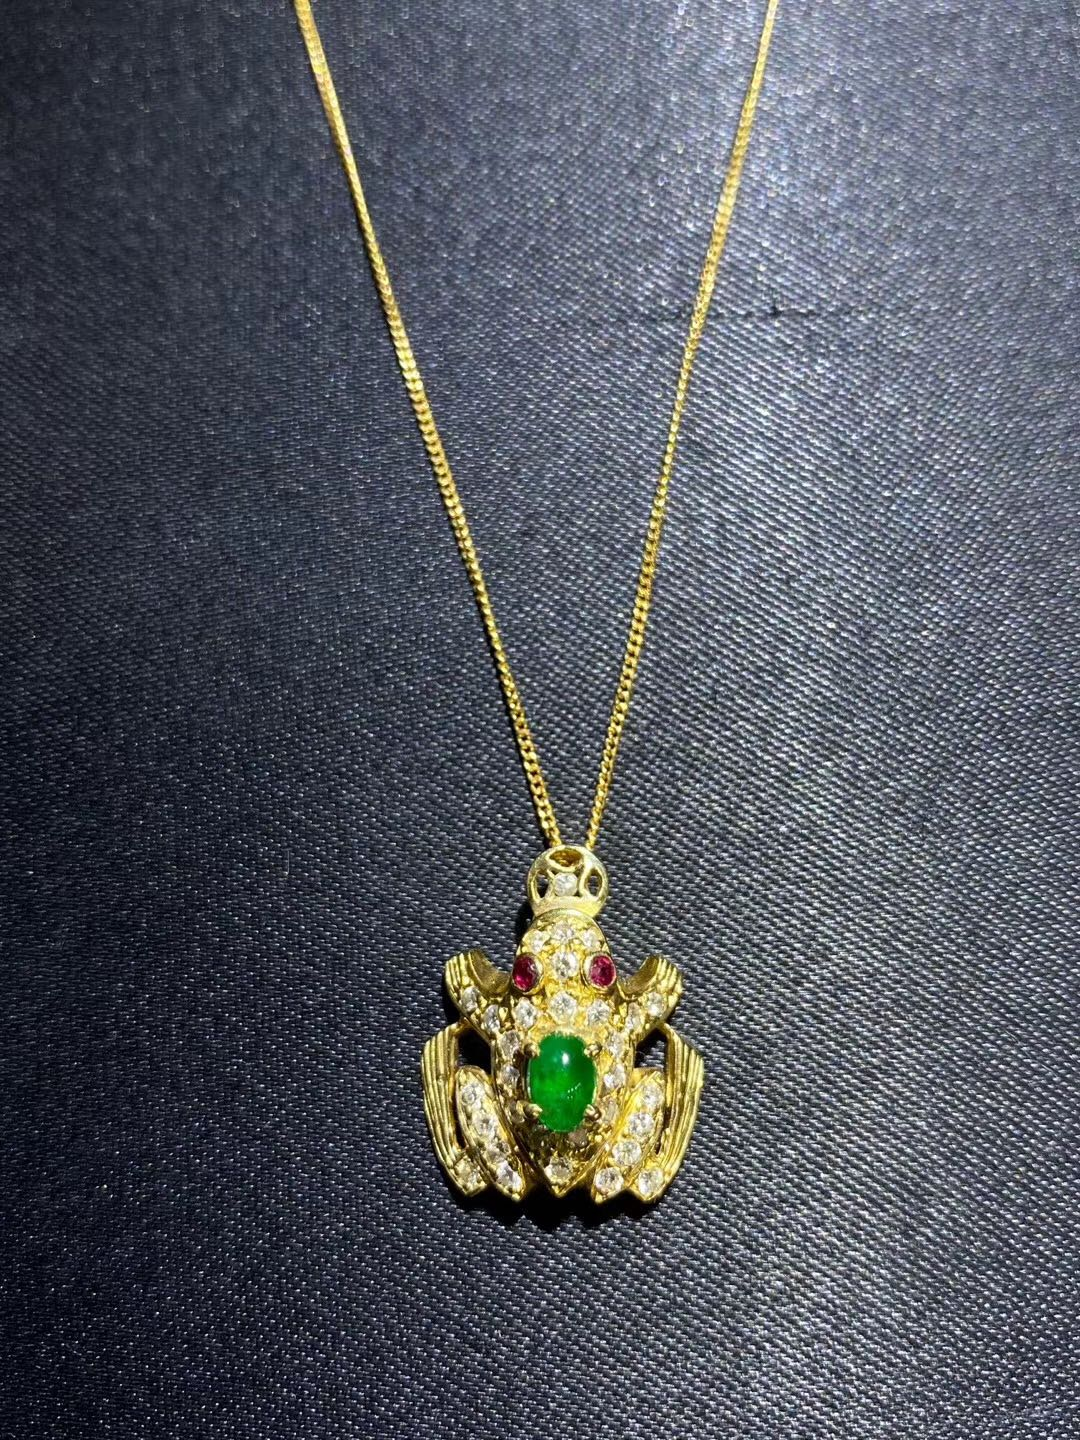 18K inlaid lovely toad emerald, Diamond Necklace ~ 18mm * 15mm